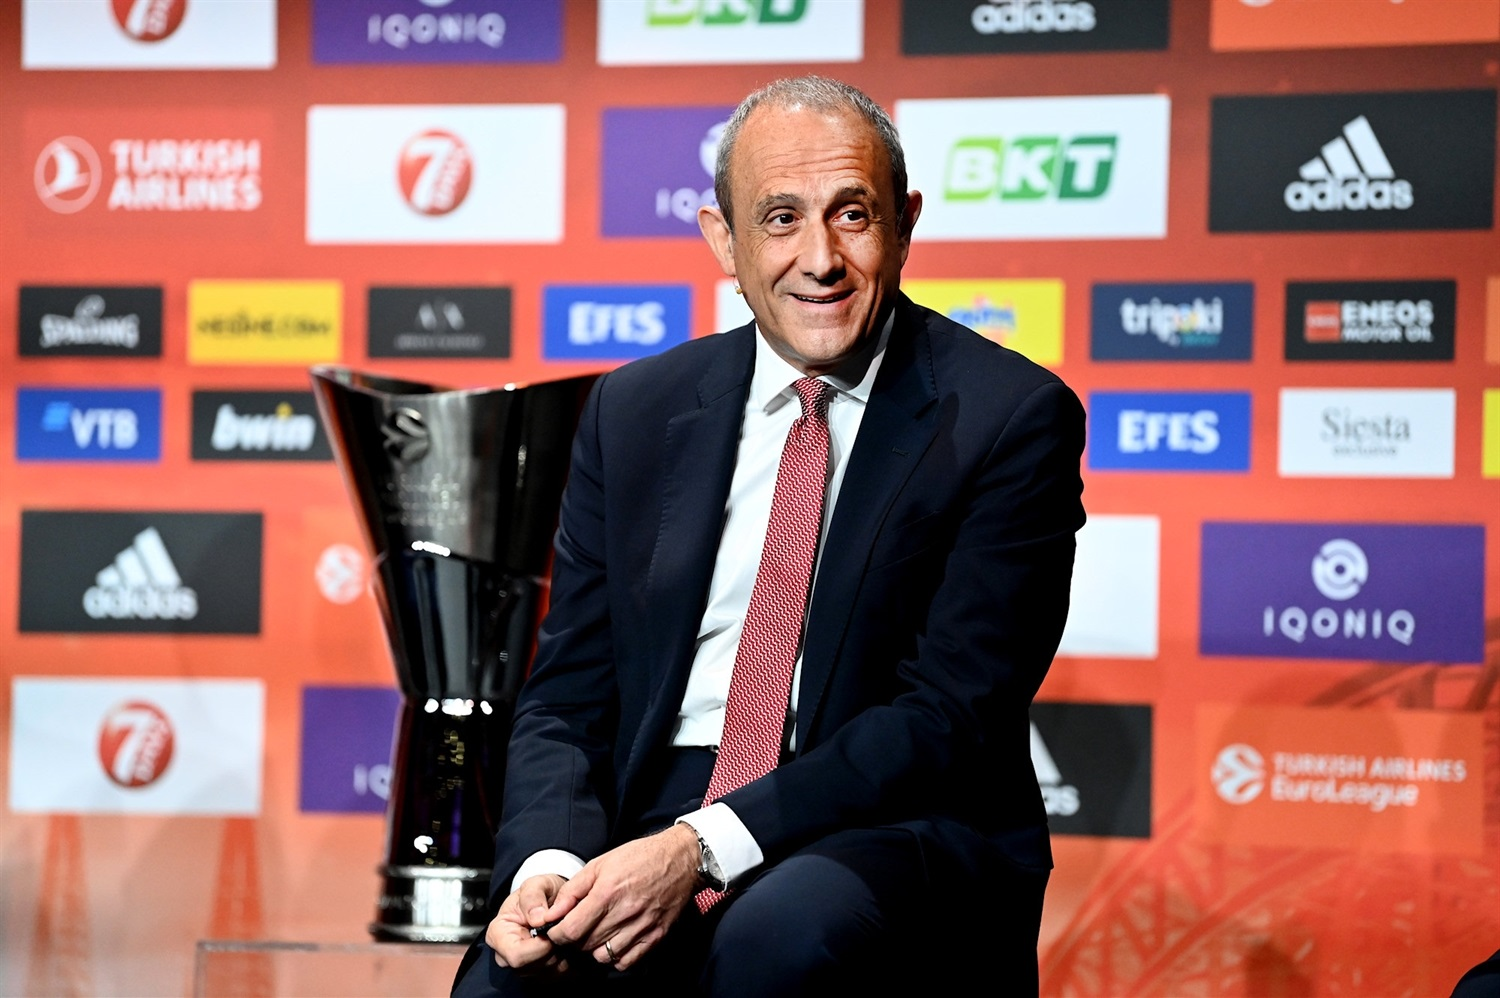 Ettore Messina - AX Exchange Armani Milan - Opening Press Conference - Final Four Cologne 2021 - EB20